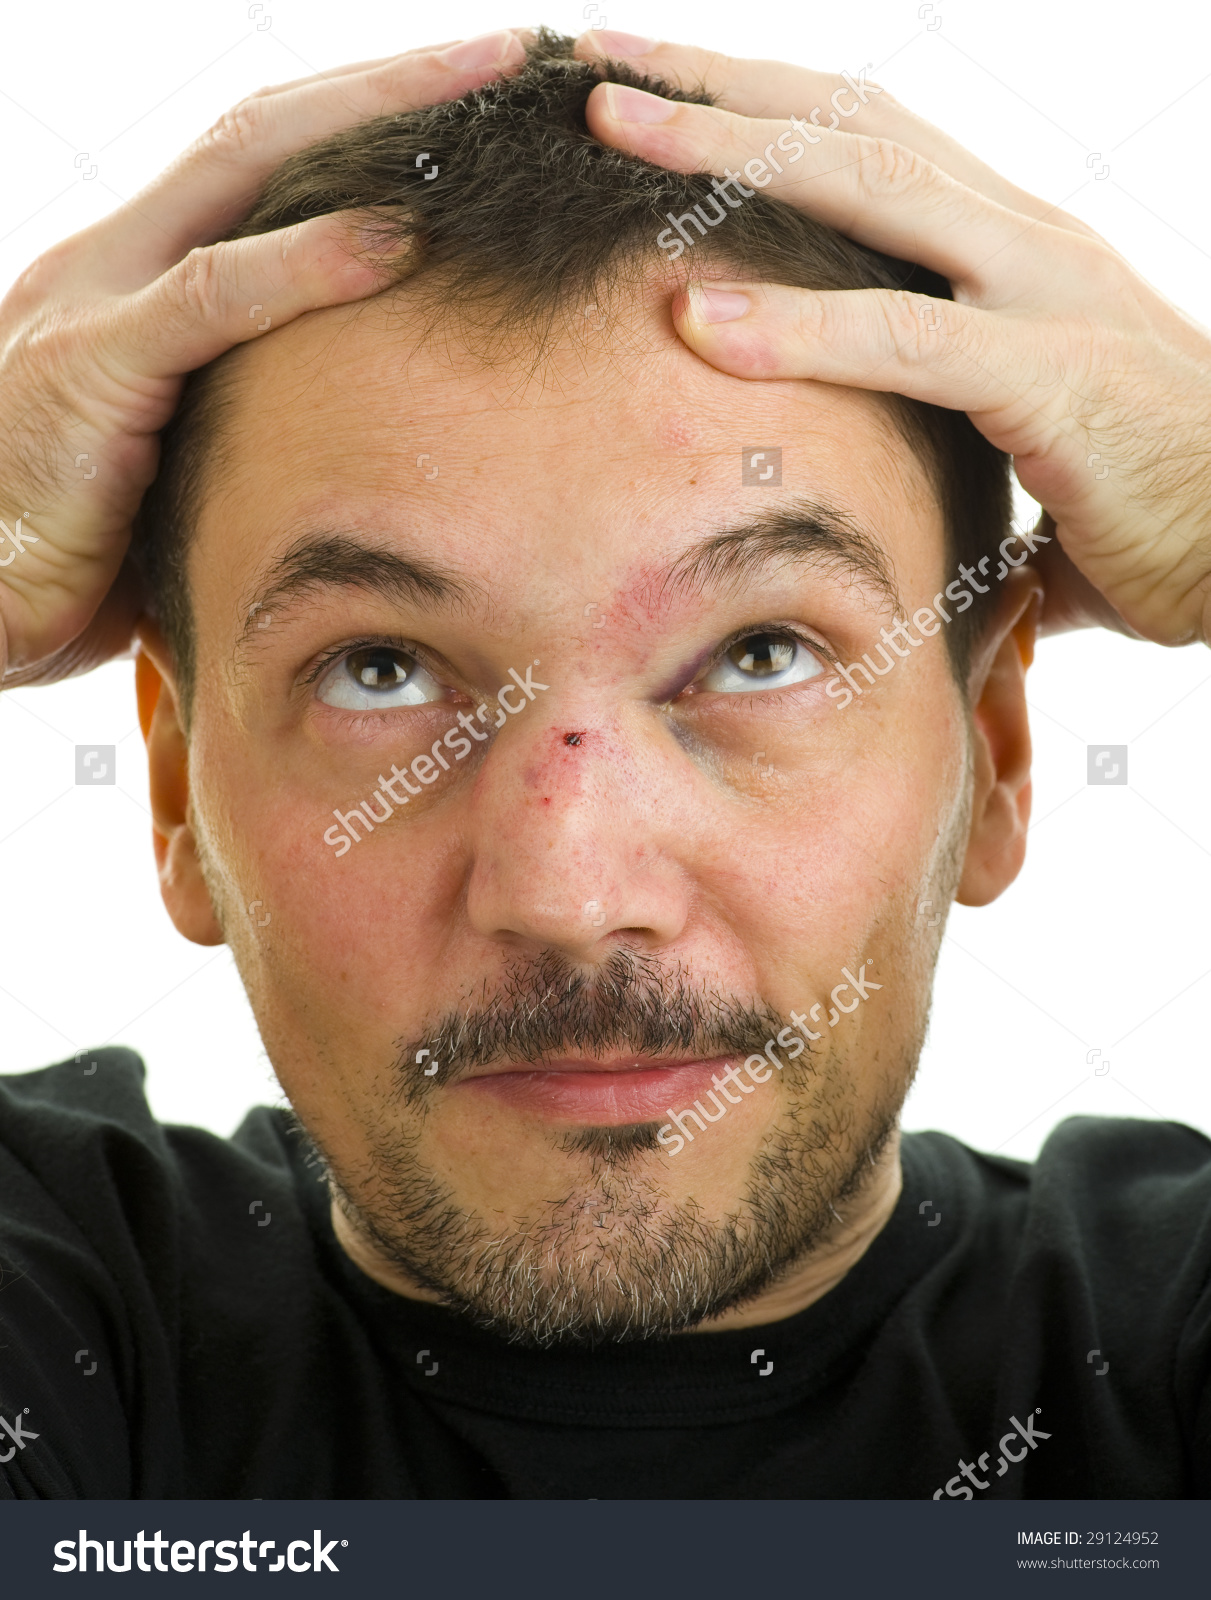 Man Crooked Broken Nose Black Eye Stock Photo 29124952.